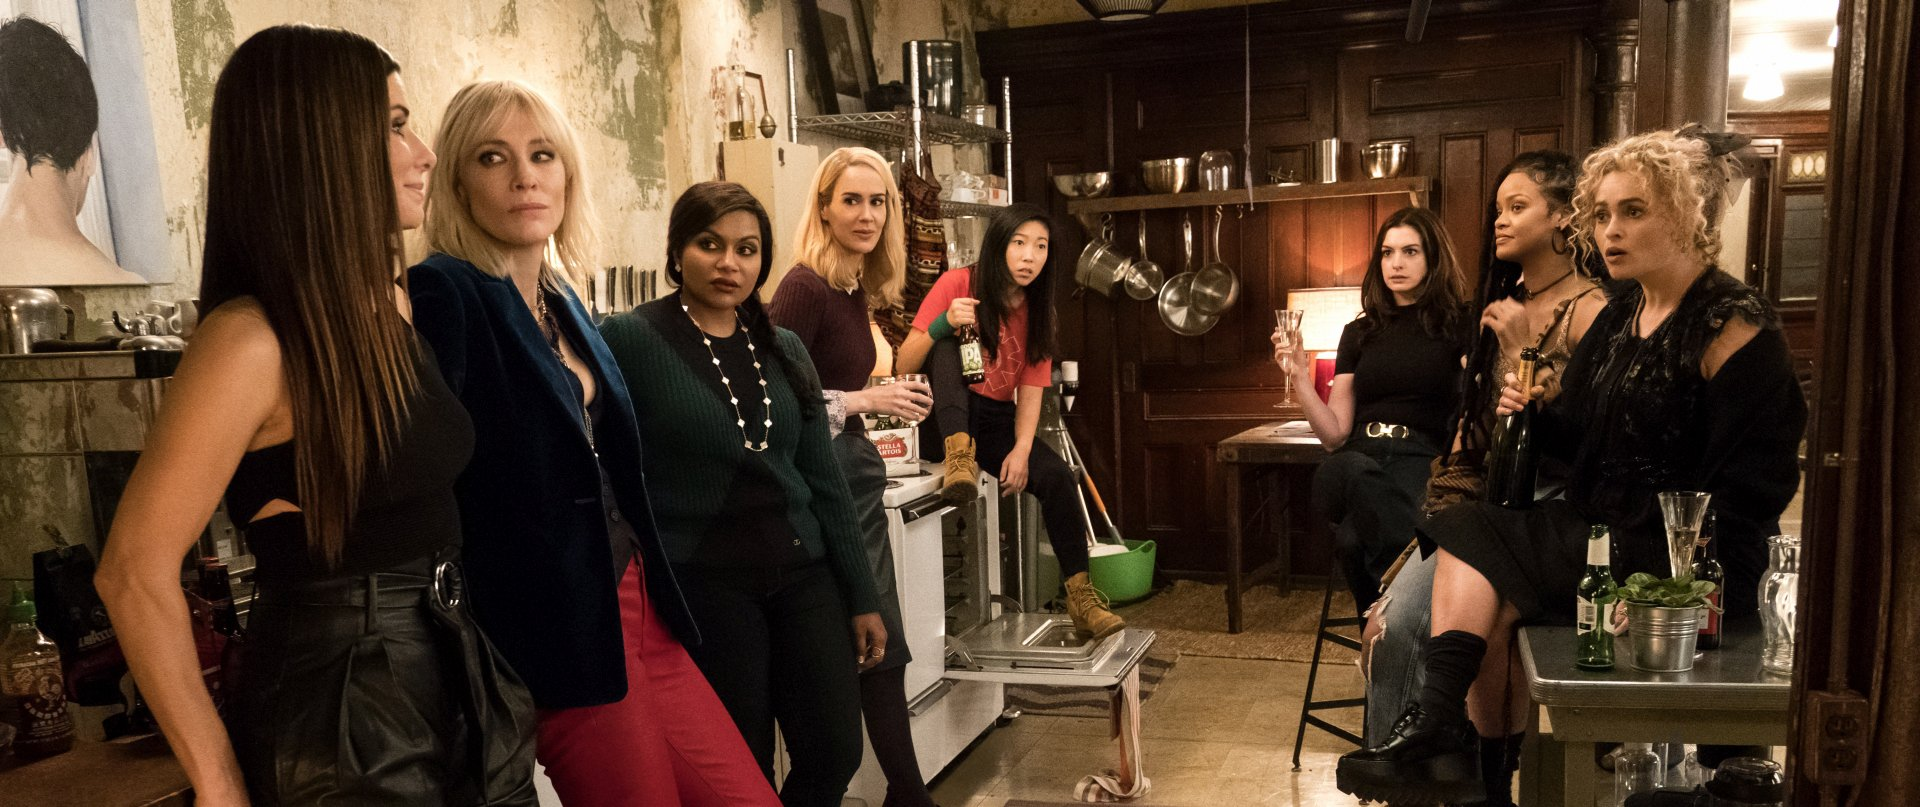 Ocean's 8 stars Sandra Bullock and Mindy Kaling can't find a single con for a trip to the cinema